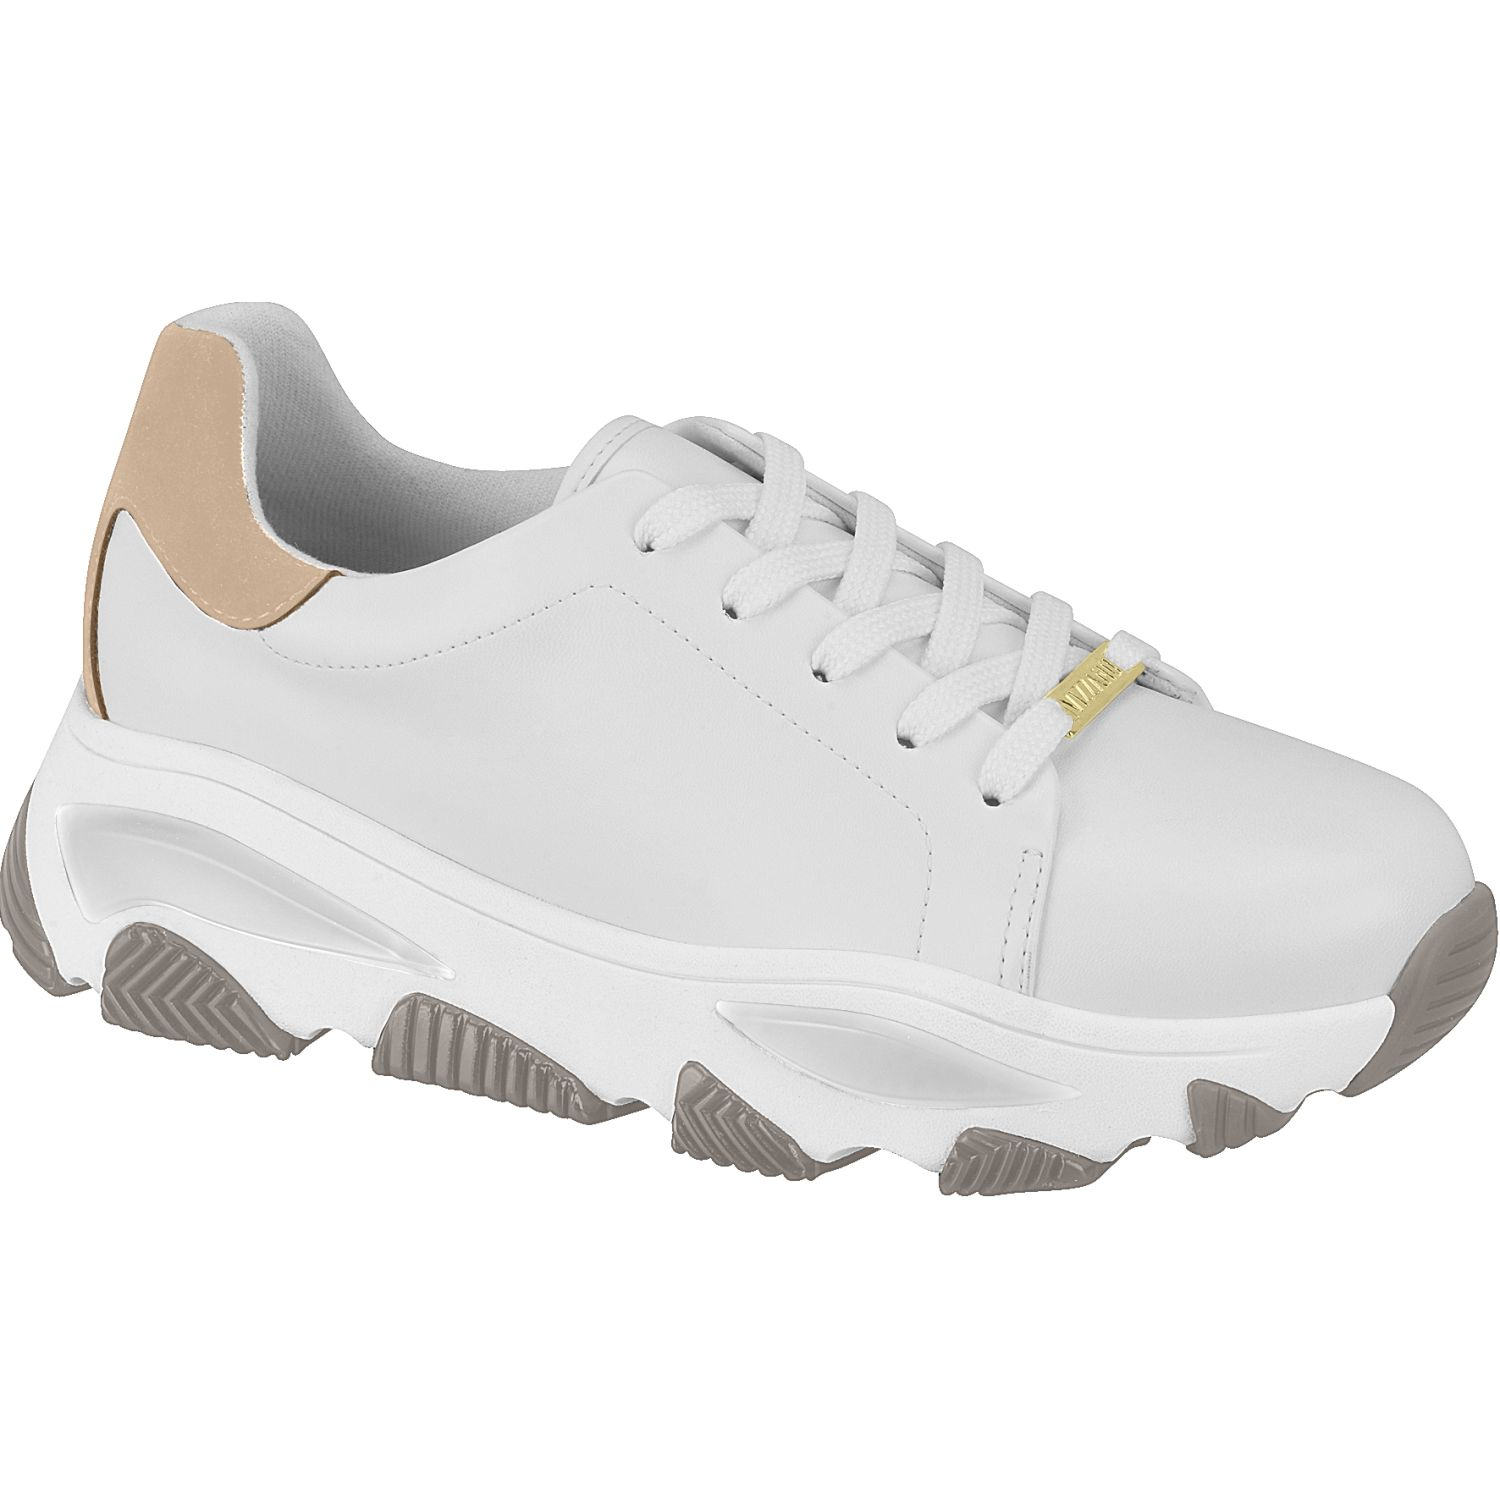 VIZZANO 1343.200.16597 blanco Blanco Zapatillas Fashion